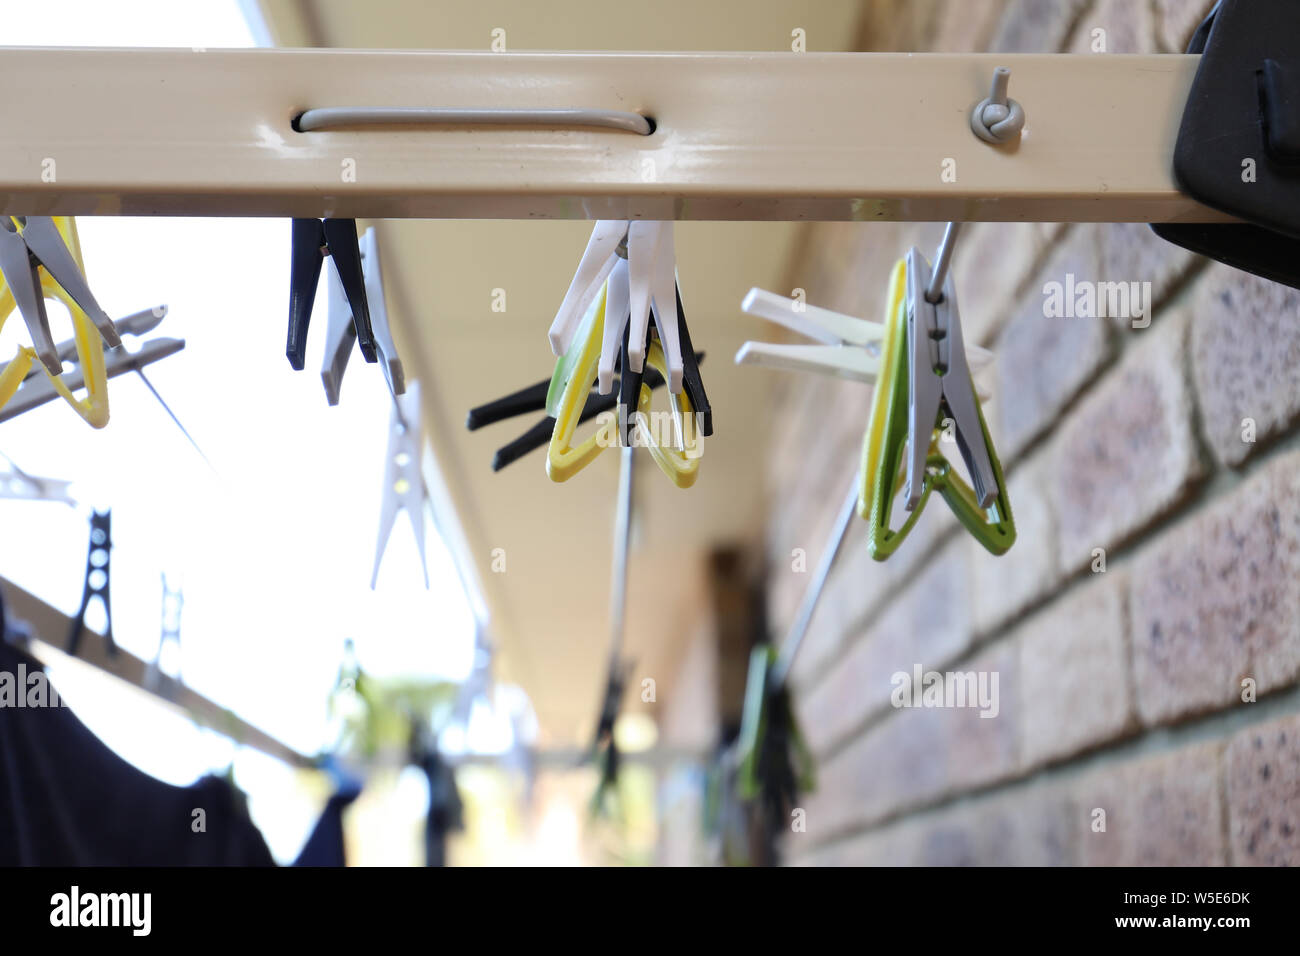 Different coloured washing pegs on an outdoor washing drying line rack attached to the side of the house. Stock Photo